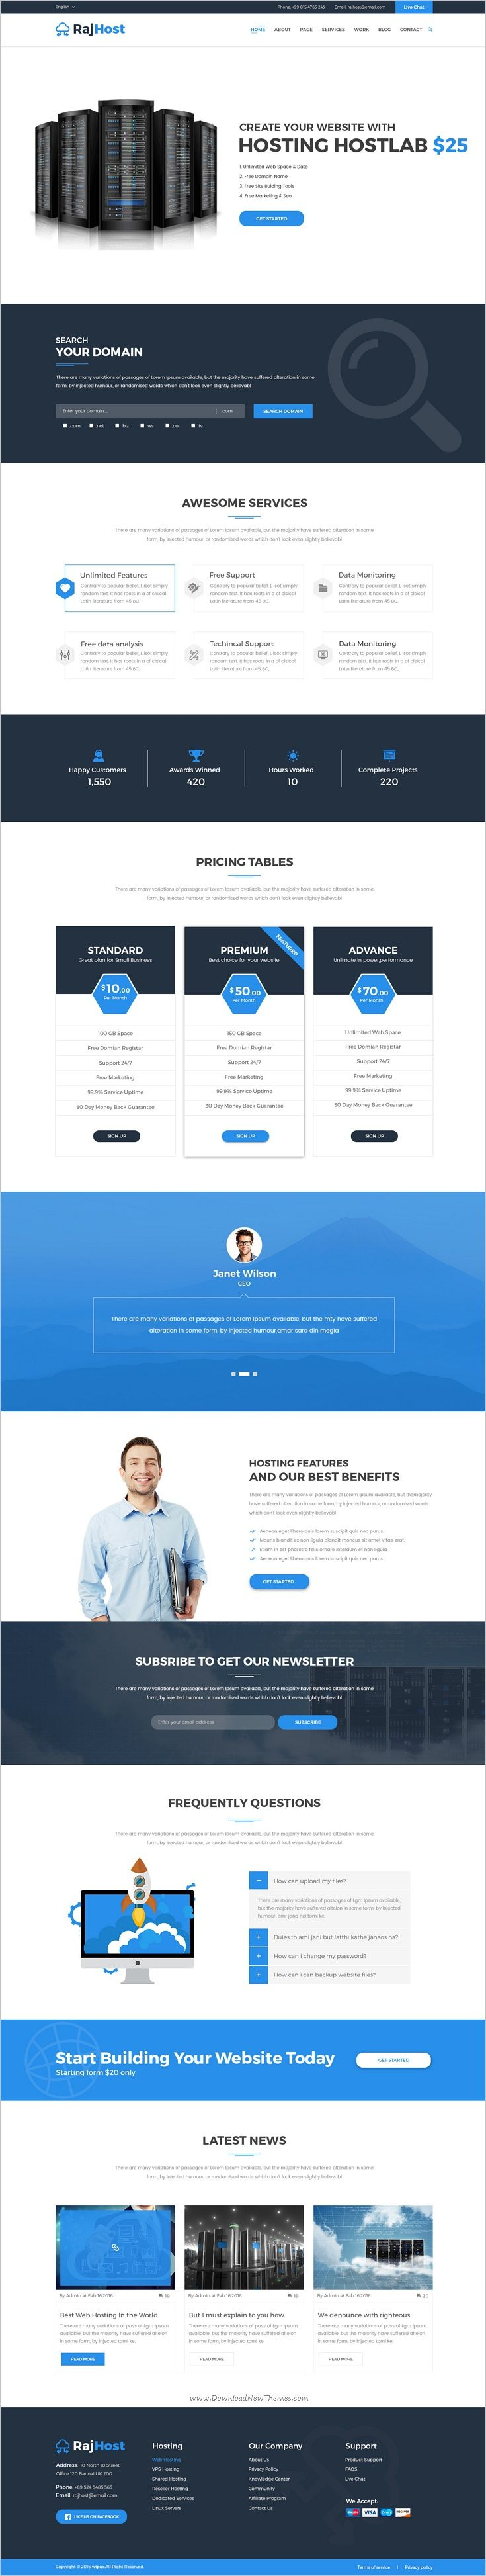 RajHost is a creative design premium #PSD Template for Web #Hosting companies websites with #WHMCS and 3 homepage layouts download now➩ https://themeforest.net/item/rajhost-web-hosting-with-whmcs-psd-template/19143238?ref=Datasata